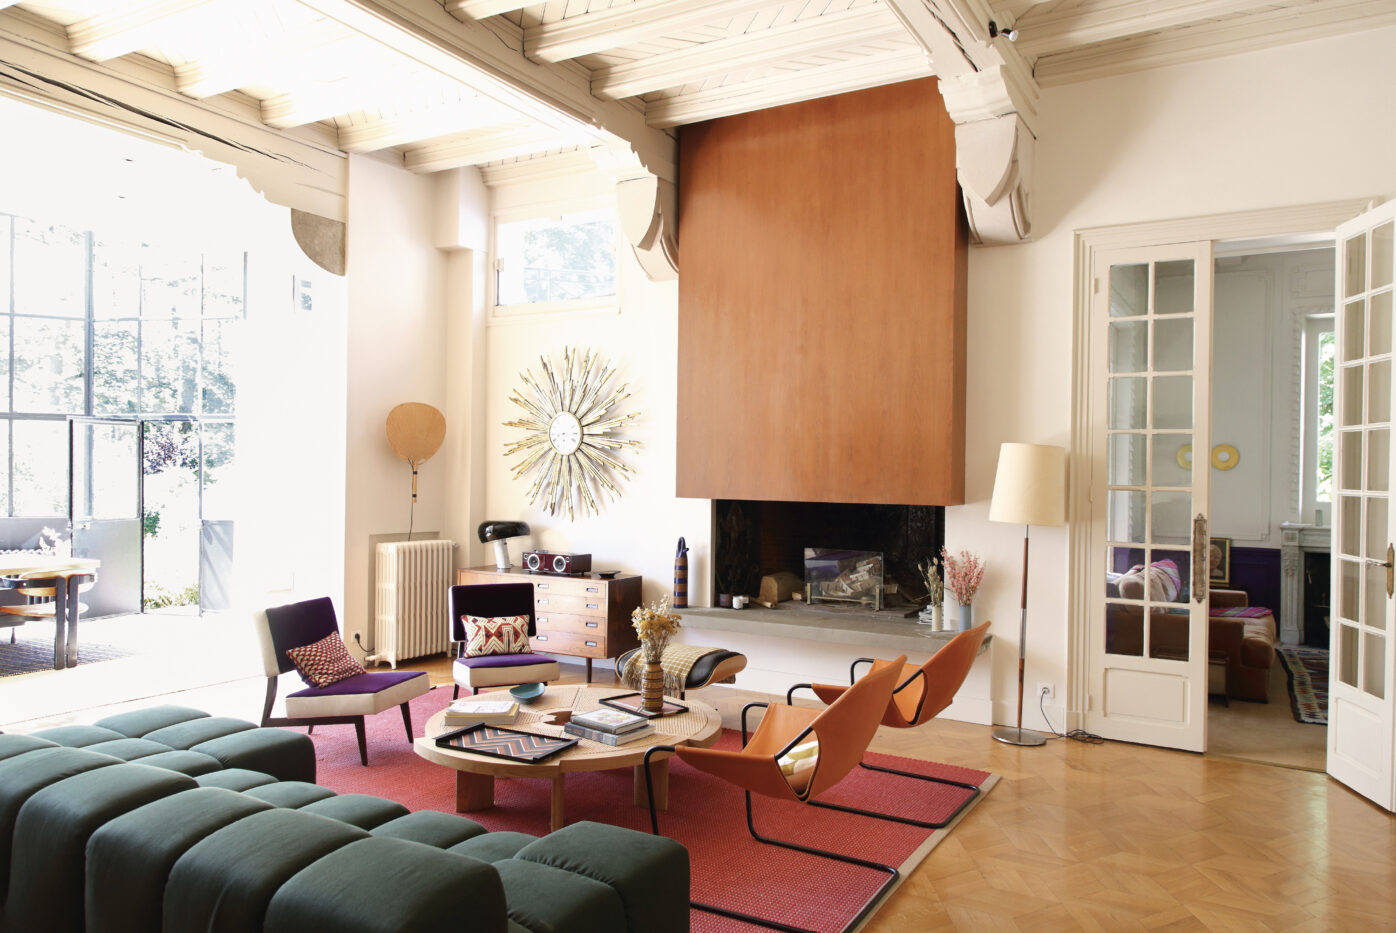 GoodMoods founder, Julia Rouzaud, lives in this sunny home 10 miles outside Paris